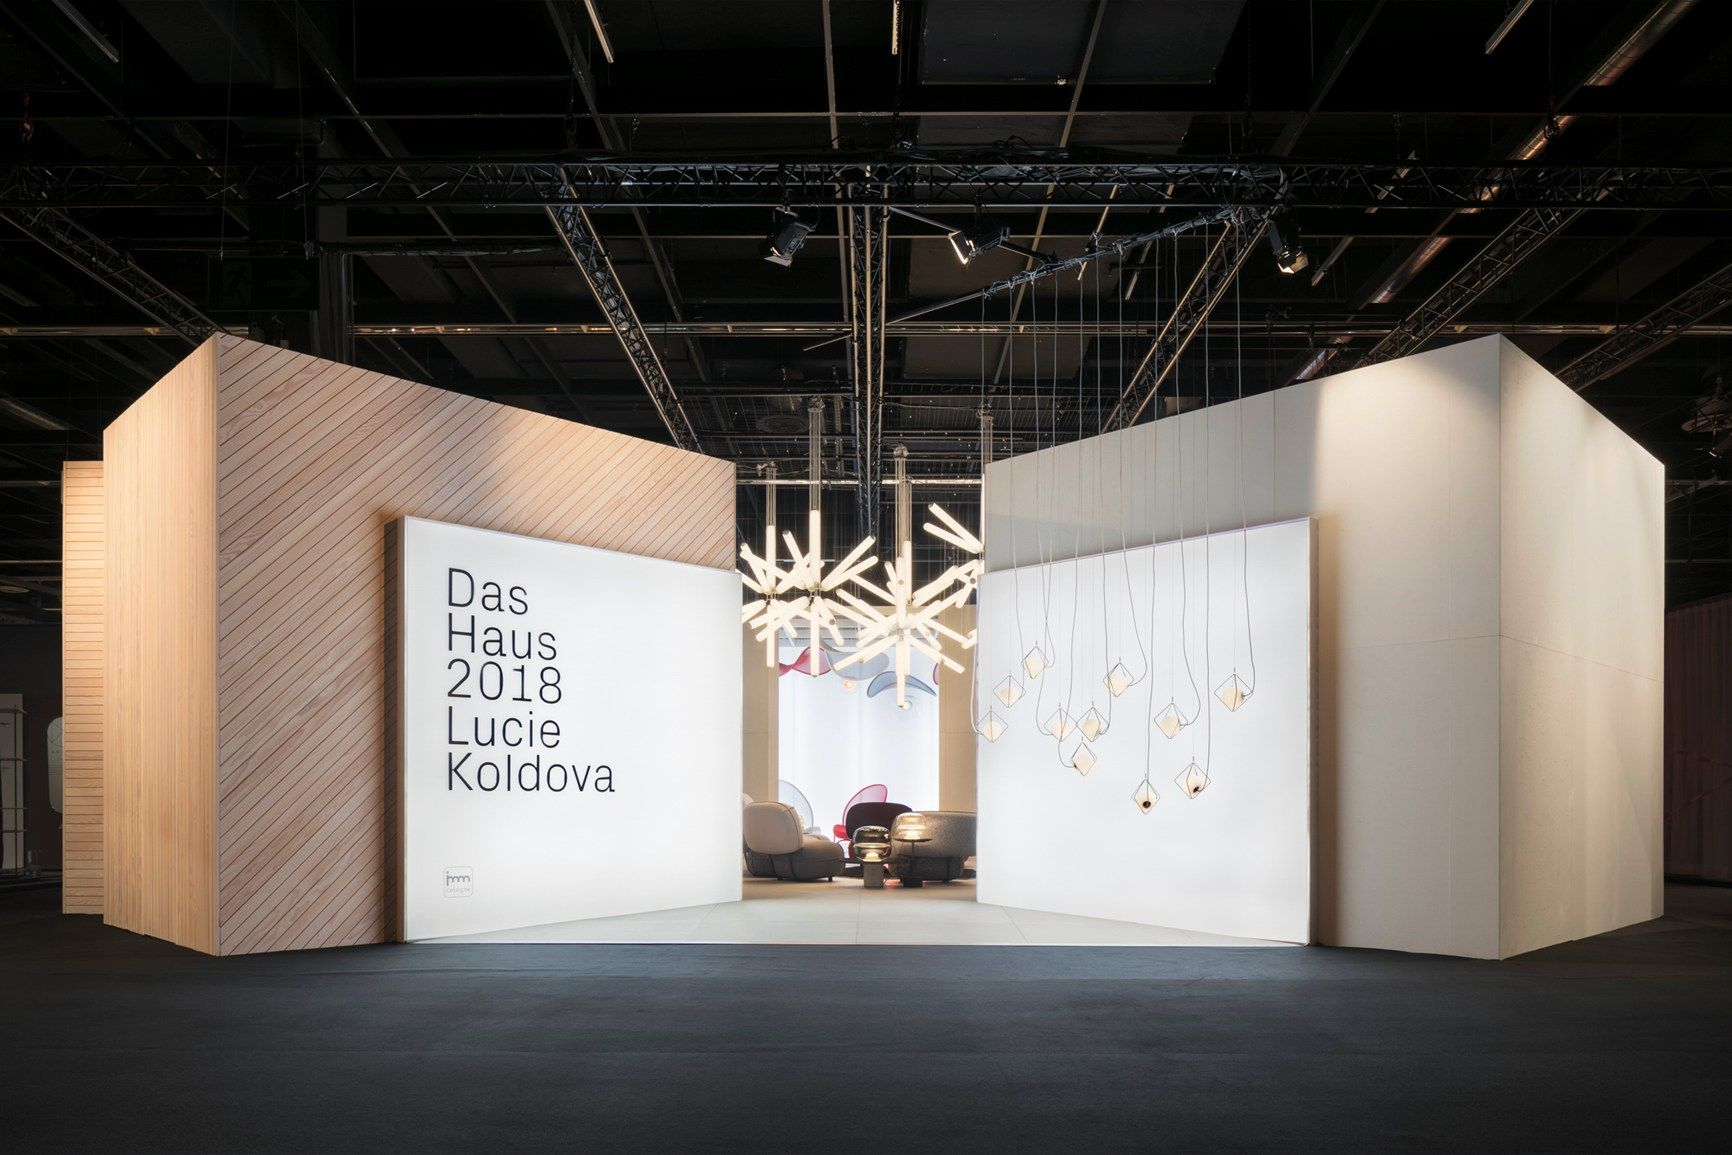 Imm Cologne 2018: The Das Haus By Lucie Koldova